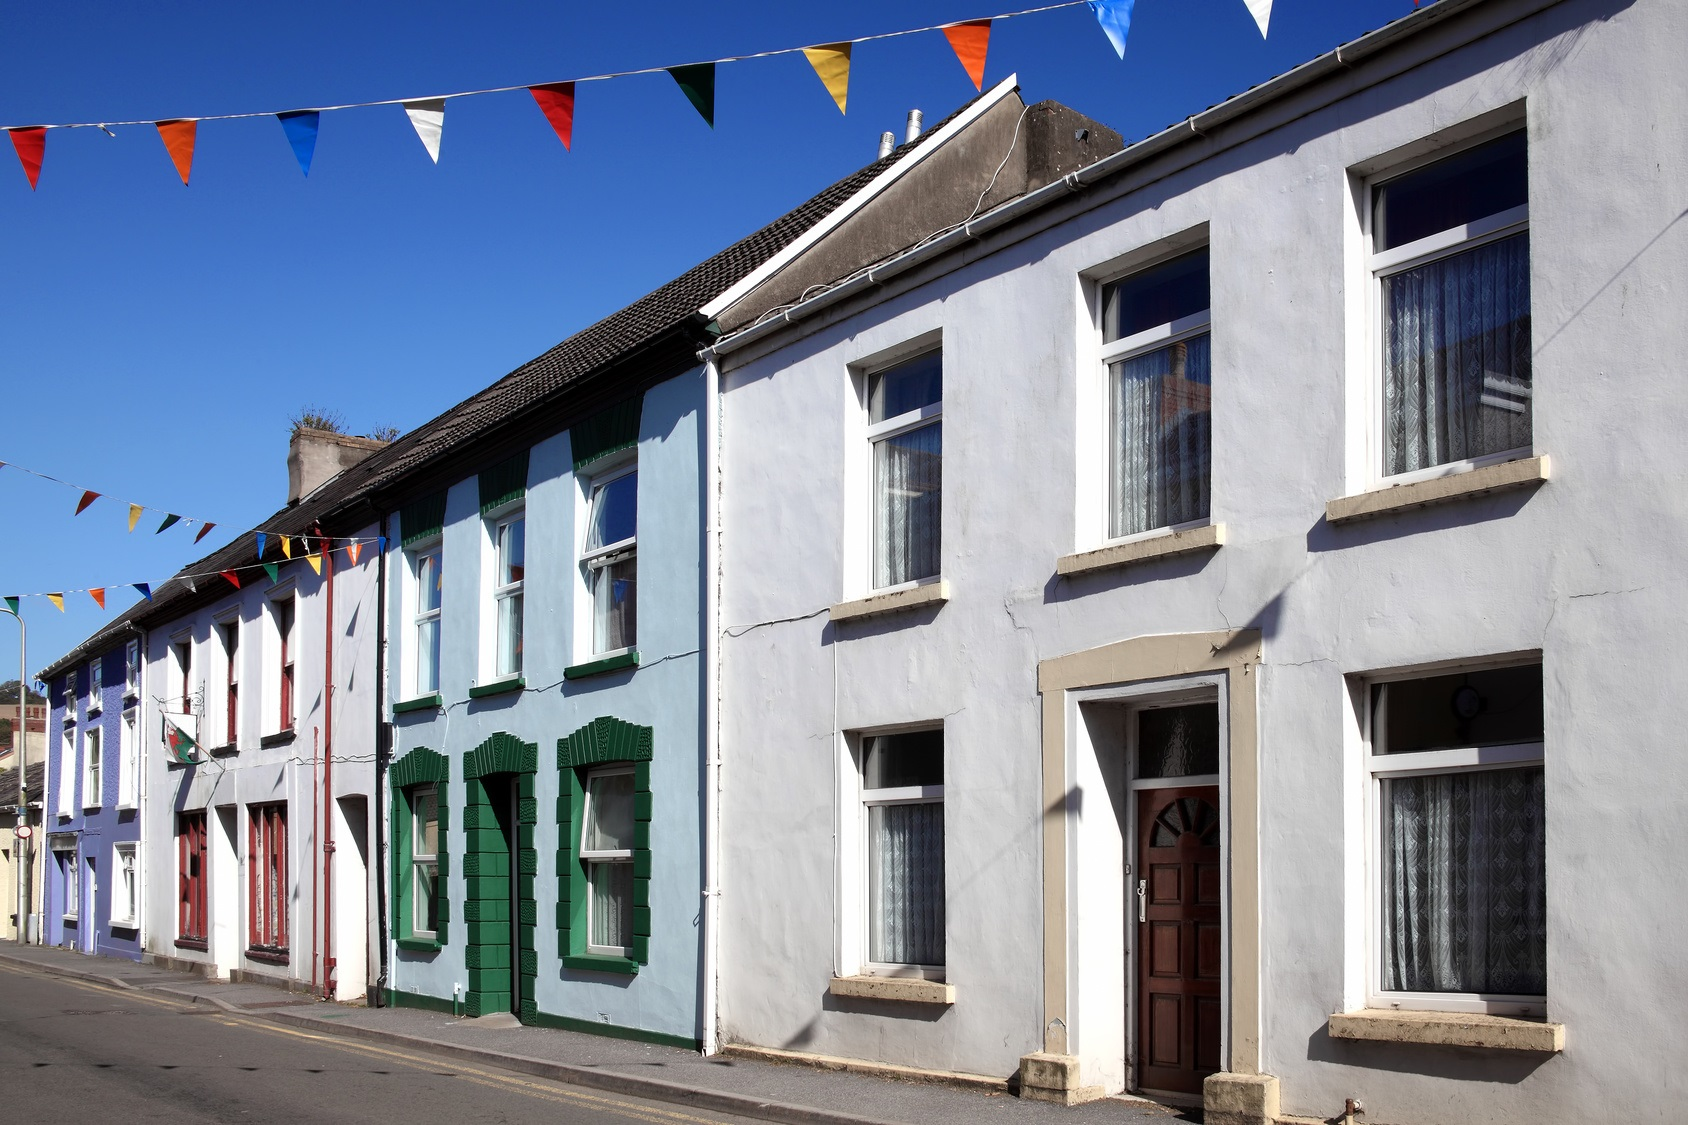 Old fashioned colourful terraced town houses in Kidwelly, Carmarthenshire, Wales, UK